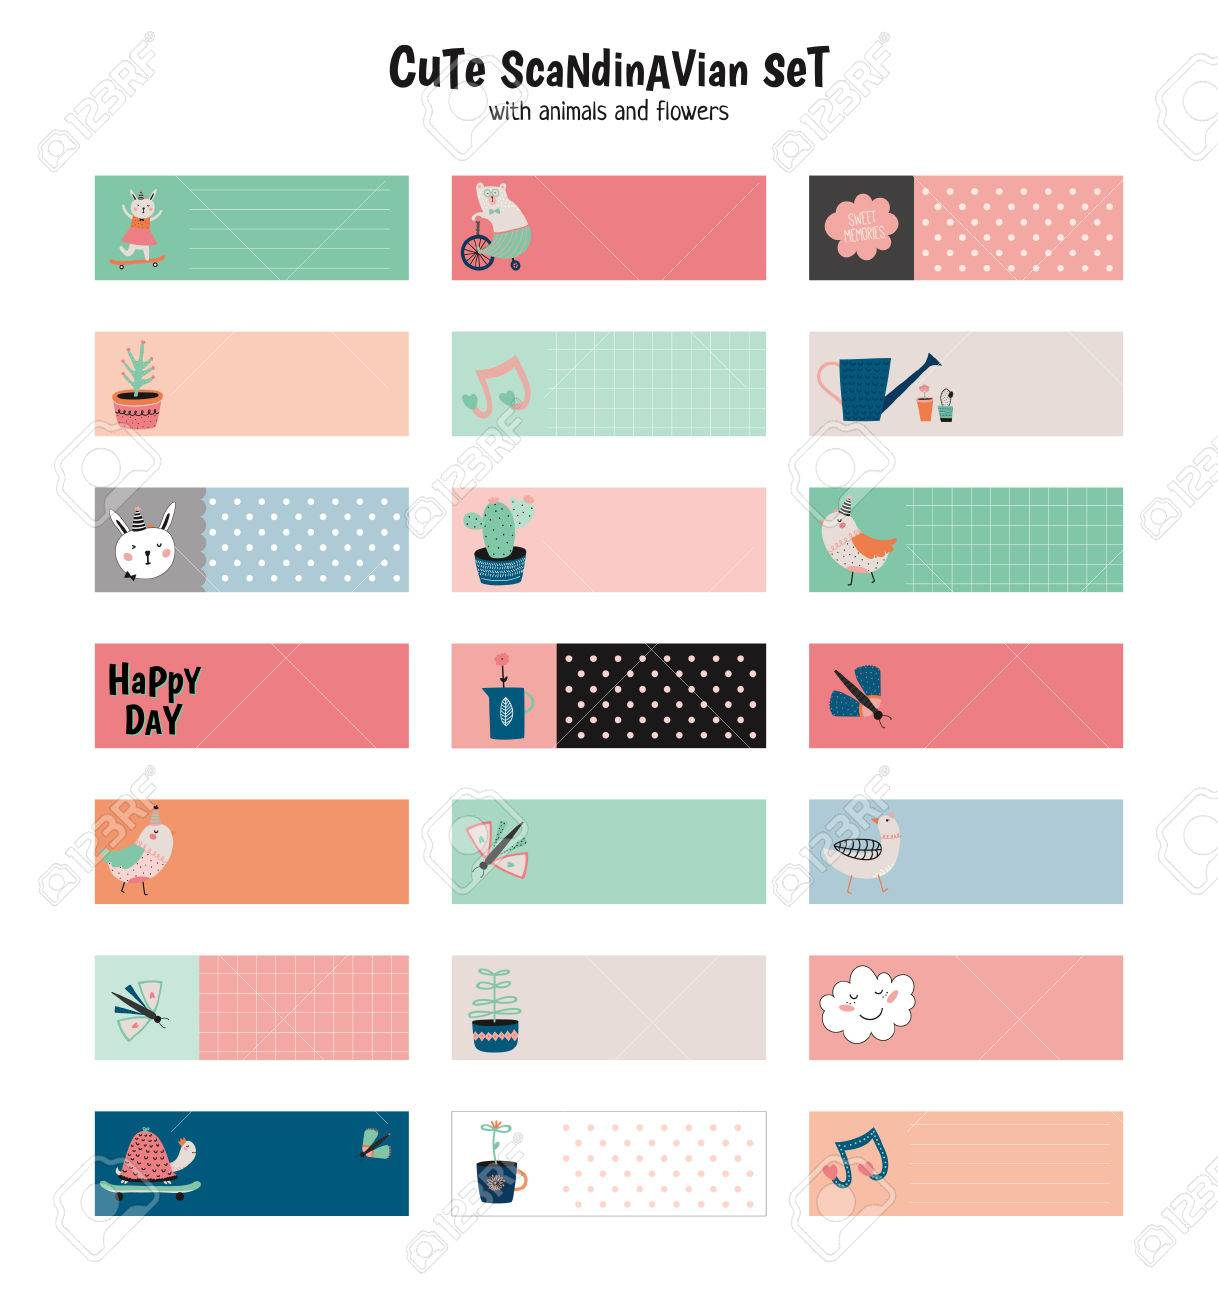 Cute scandinavian set of greeting cards, gift tags, stickers